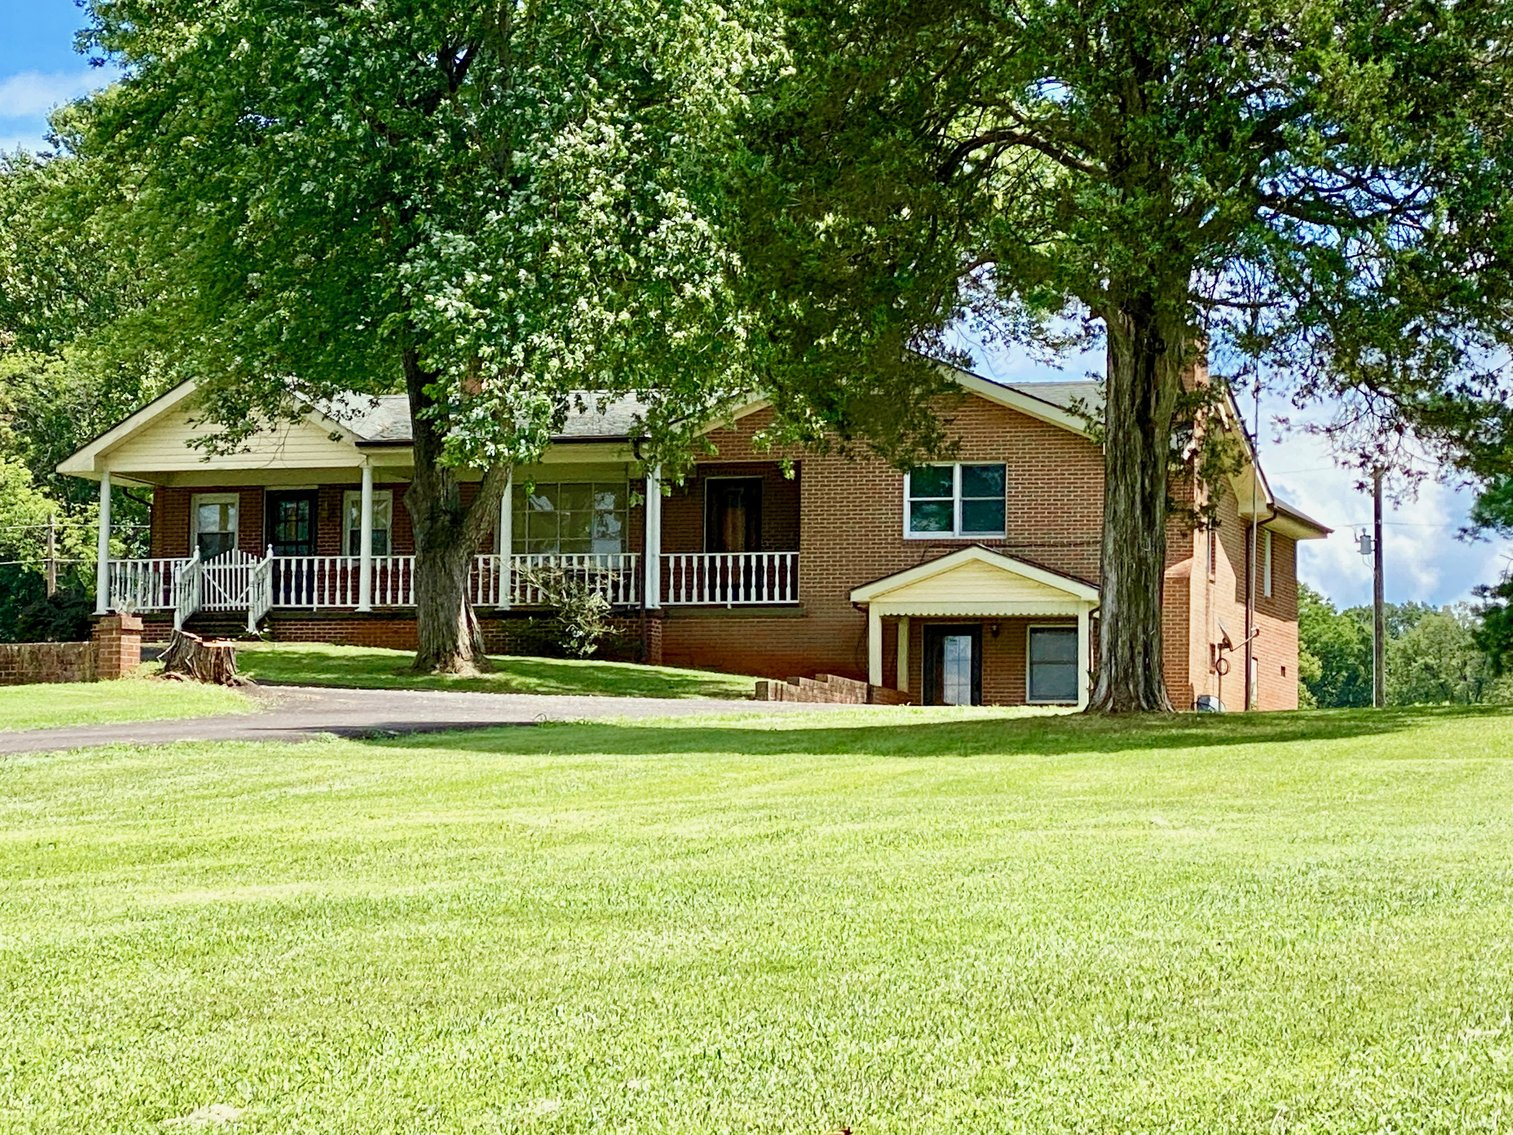 Image for 3 BR/2 BA Brick Home on 8.9 +/- Acres w/Detached Garage/Work Shop & Gorgeous Mountain Views